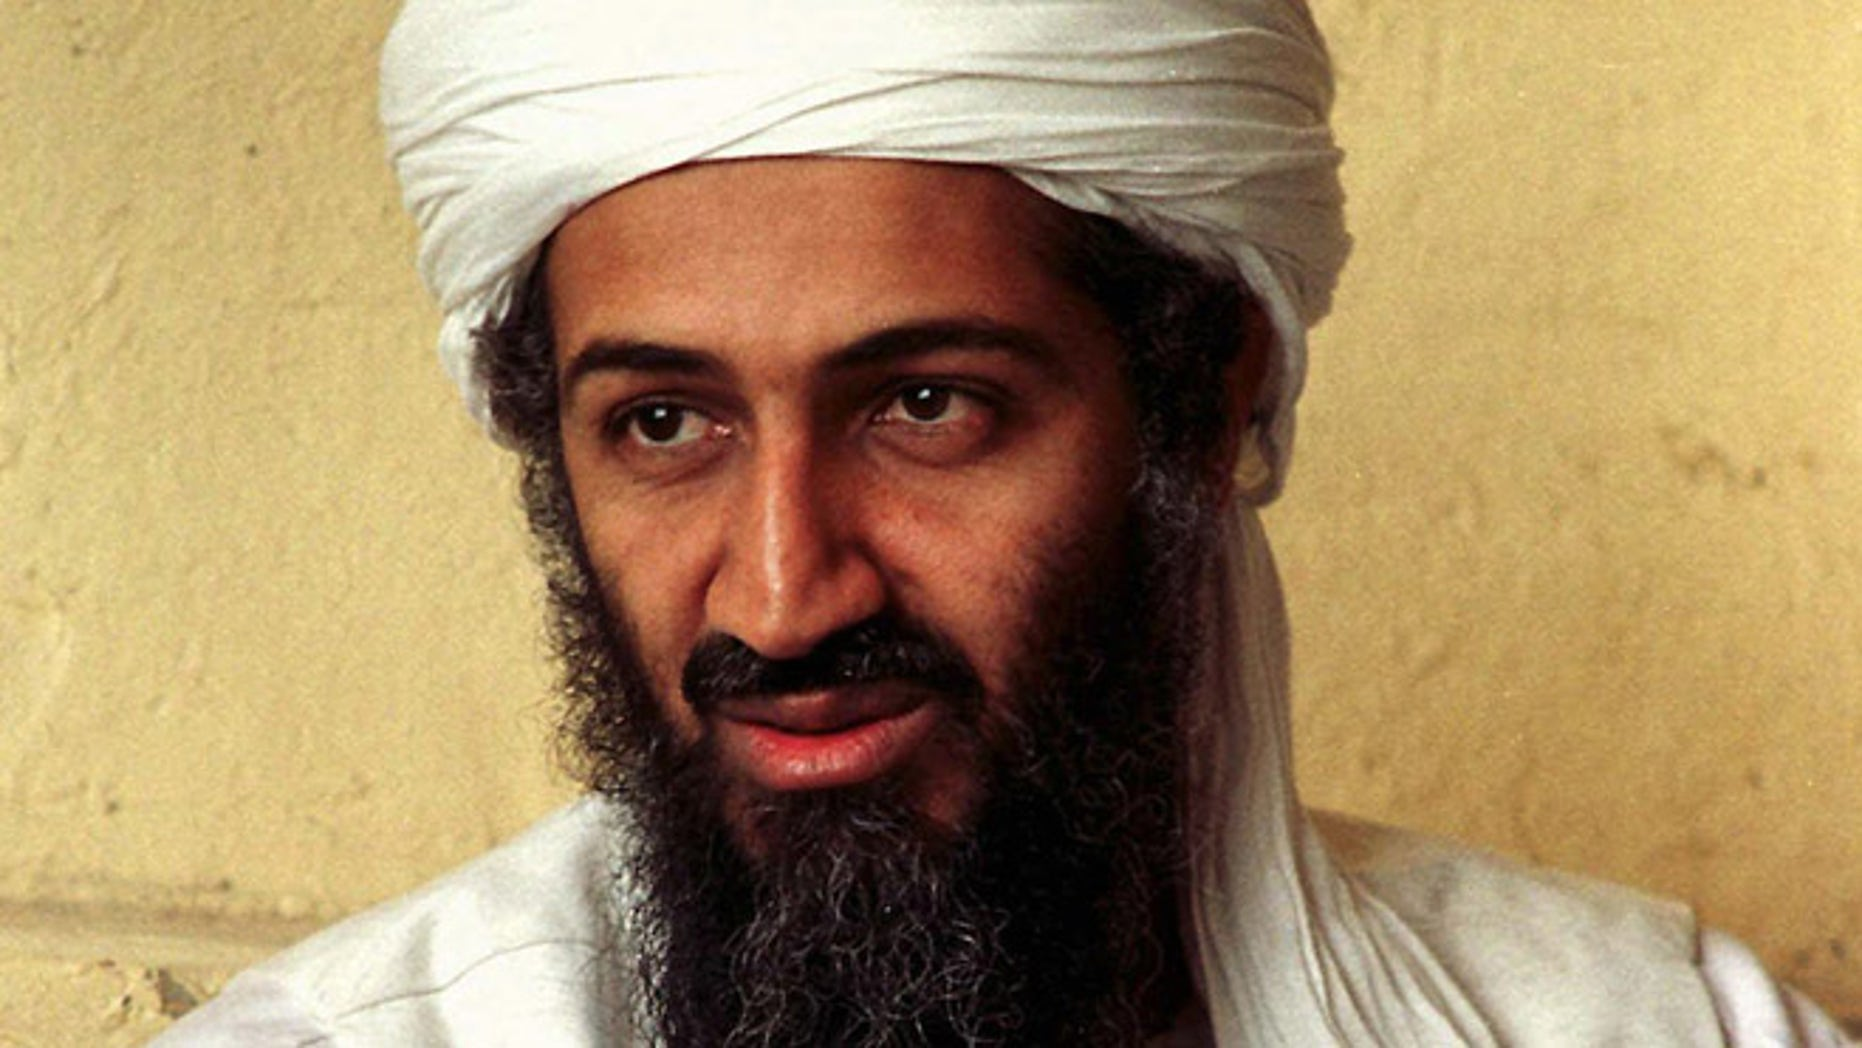 Former Al Qaeda leader Usama bin Laden is shown in this undated file photo.